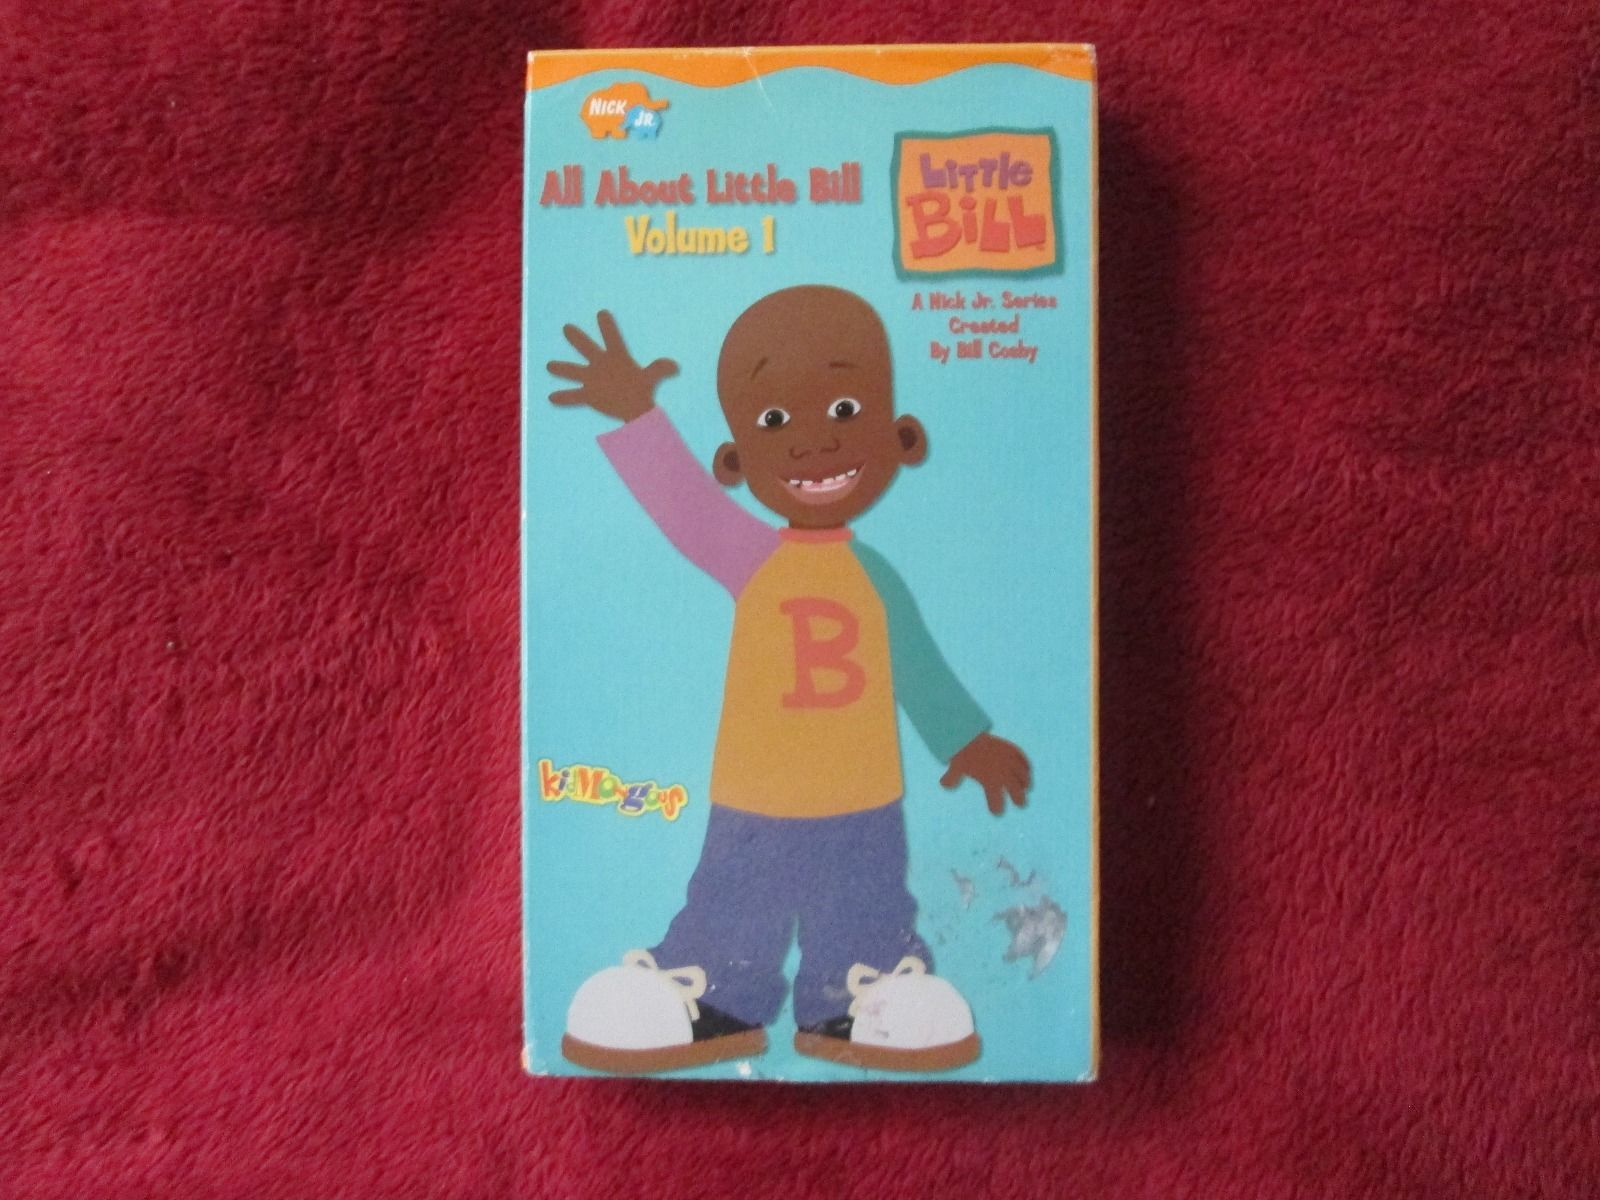 Little Bill: All About Little Bill Volume 1 (2001 VHS)